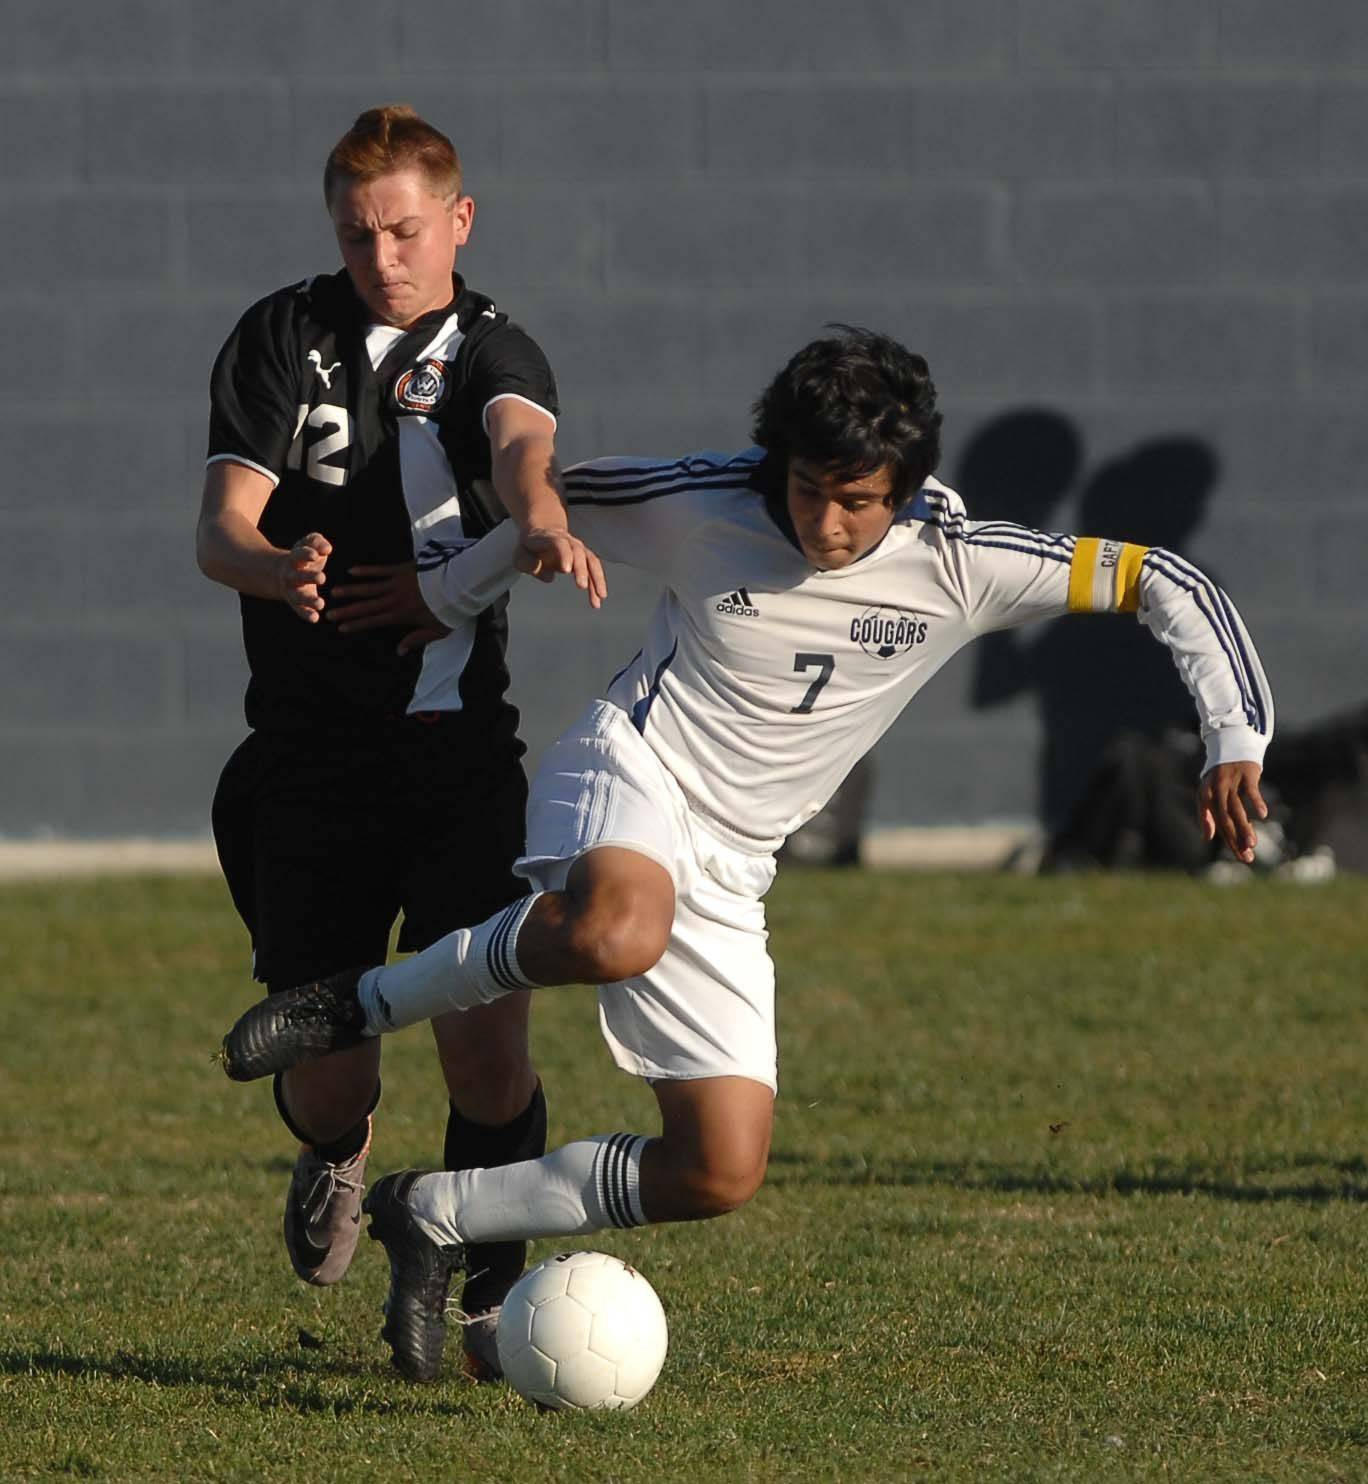 Jarrod Jakubowski,left, of Wheaton Warrenville South and Ivan Valencia of Plainfield South chase down a ball during Wednesday's soccer game at Neuqua Valley High School.